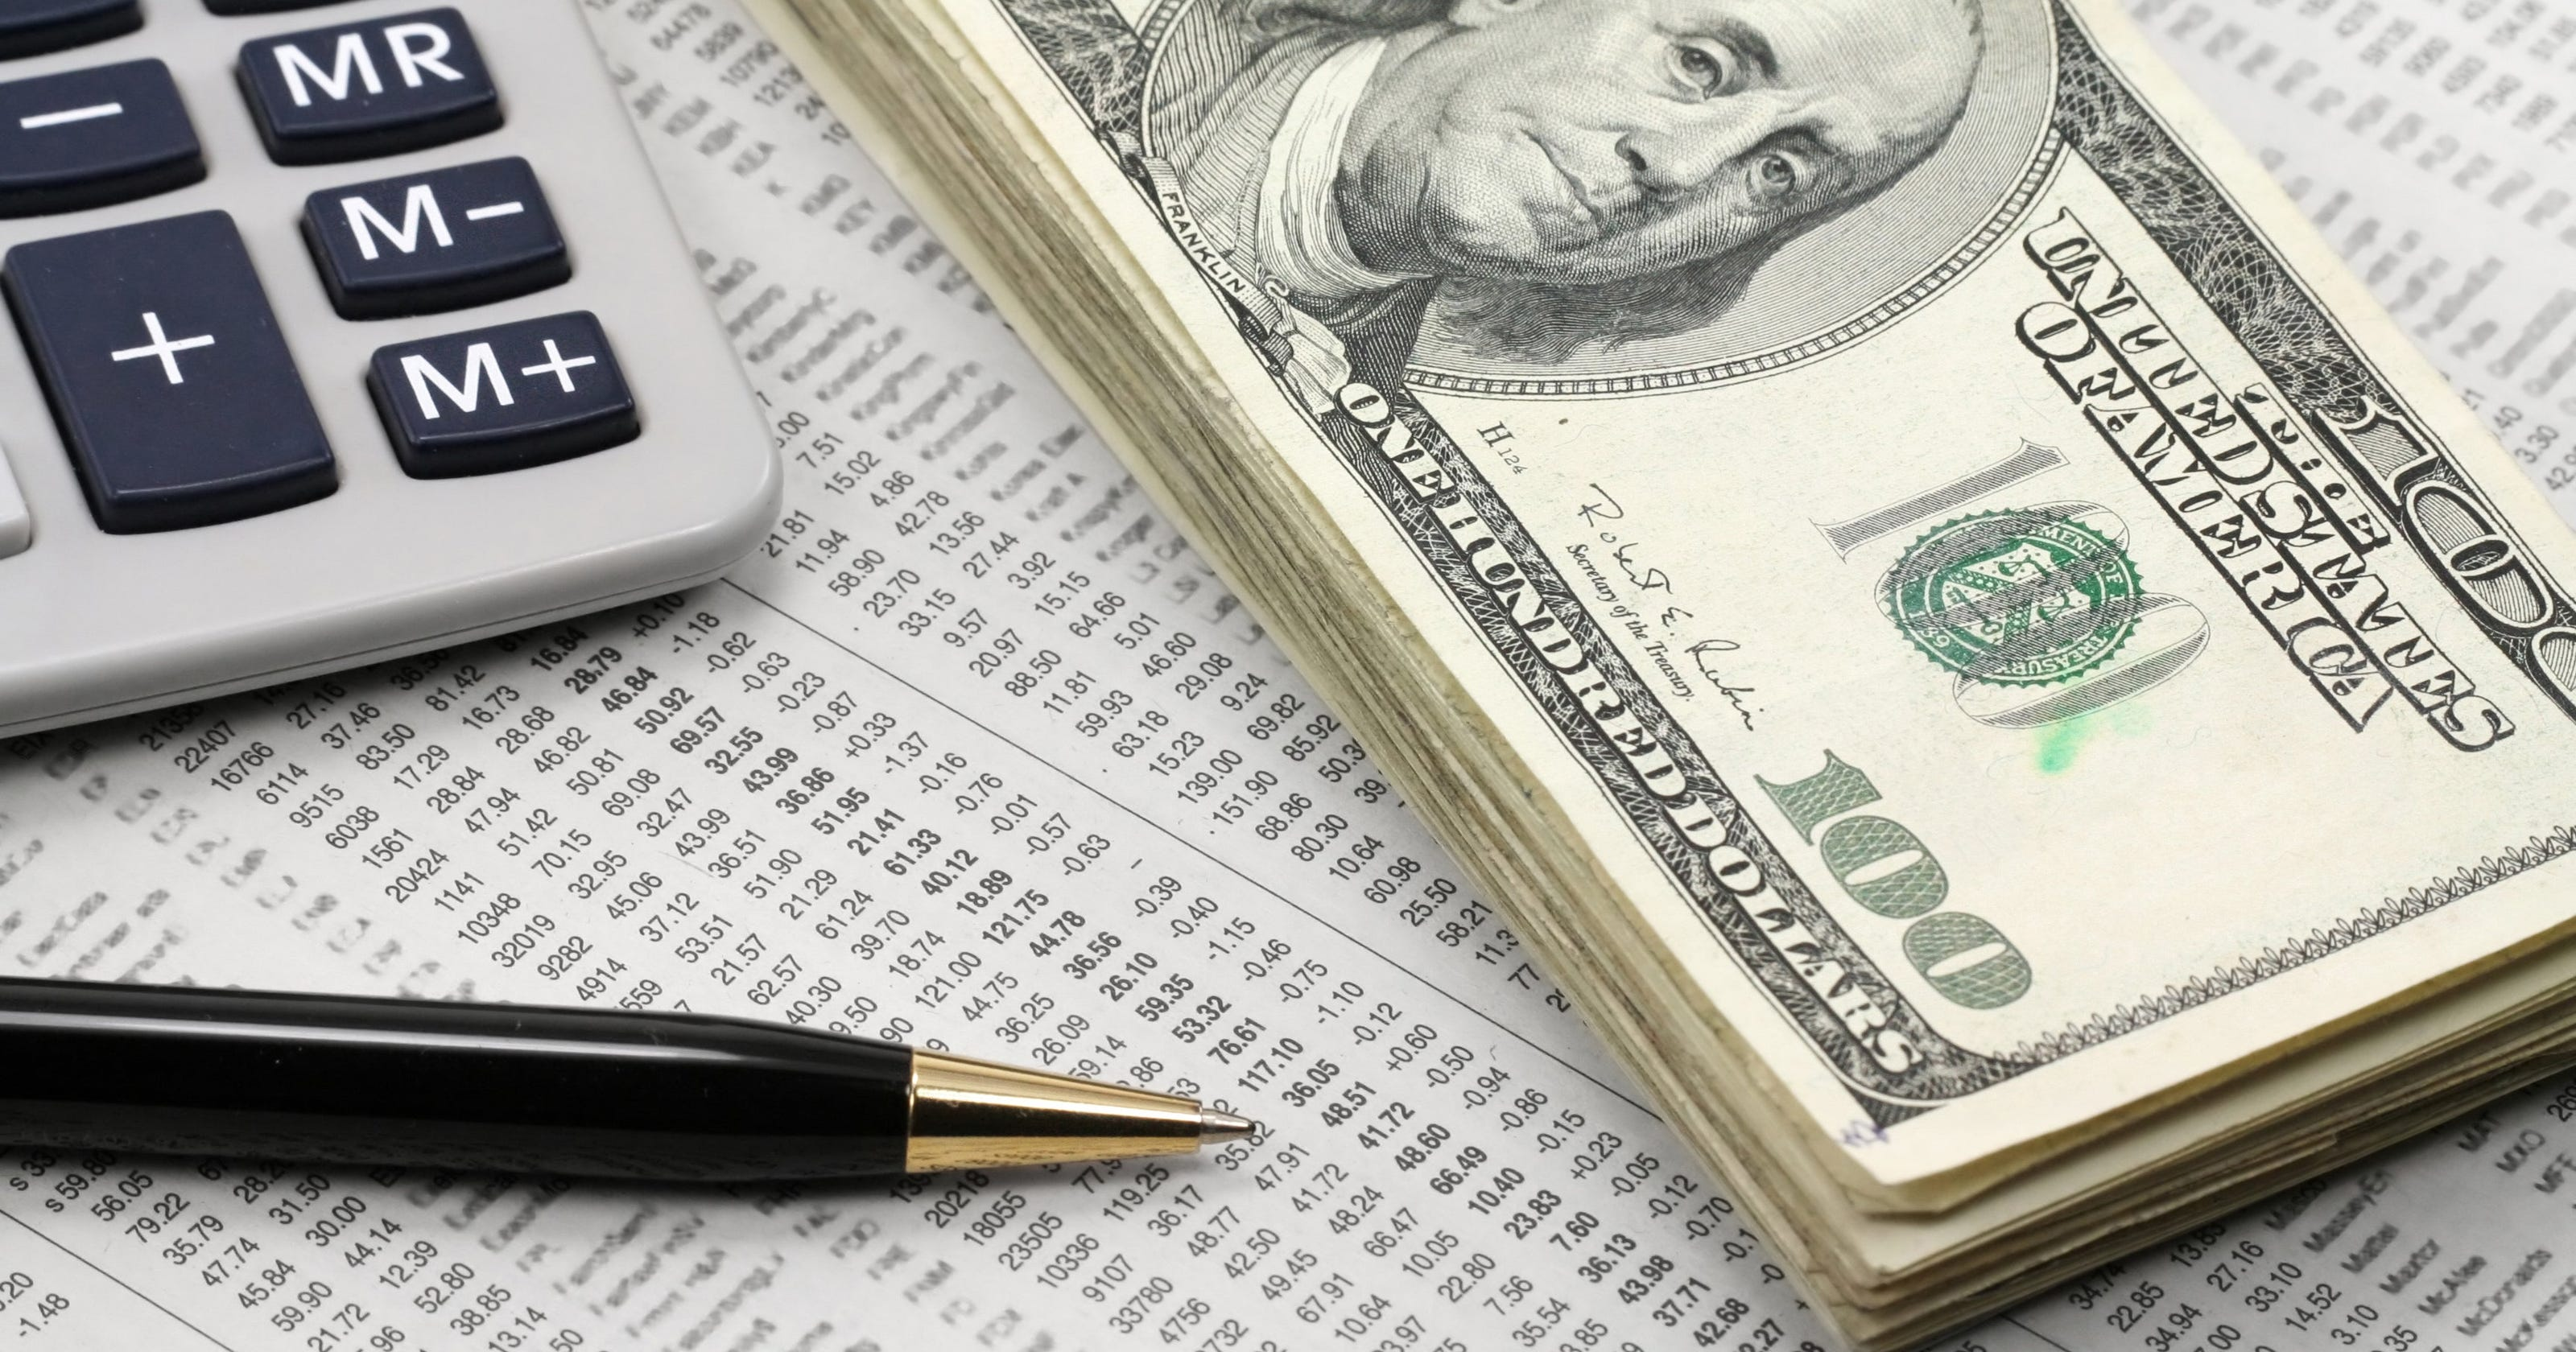 Stimulus check: Calculate how much money you could get